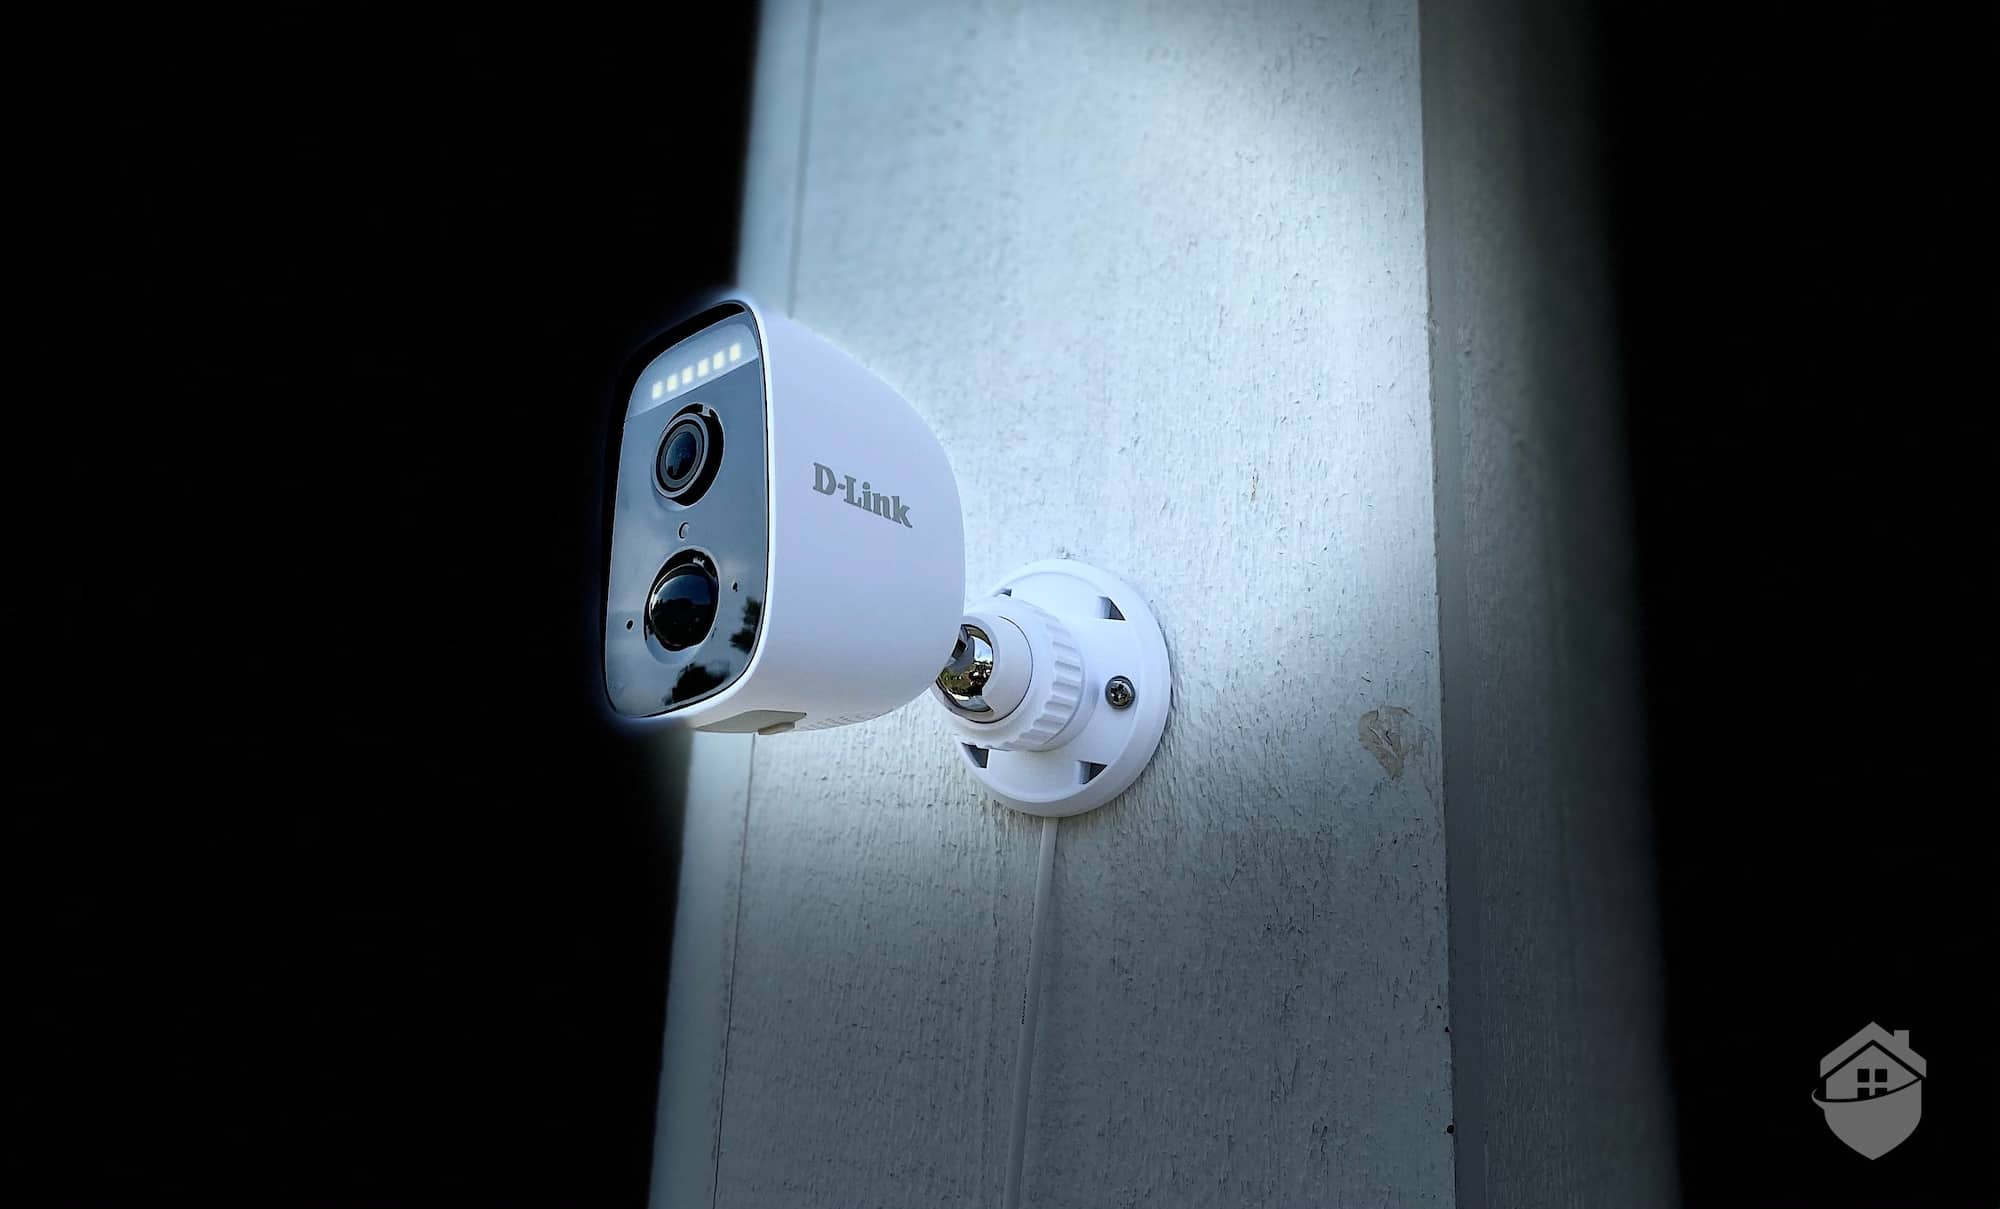 D-Link Camera at Night